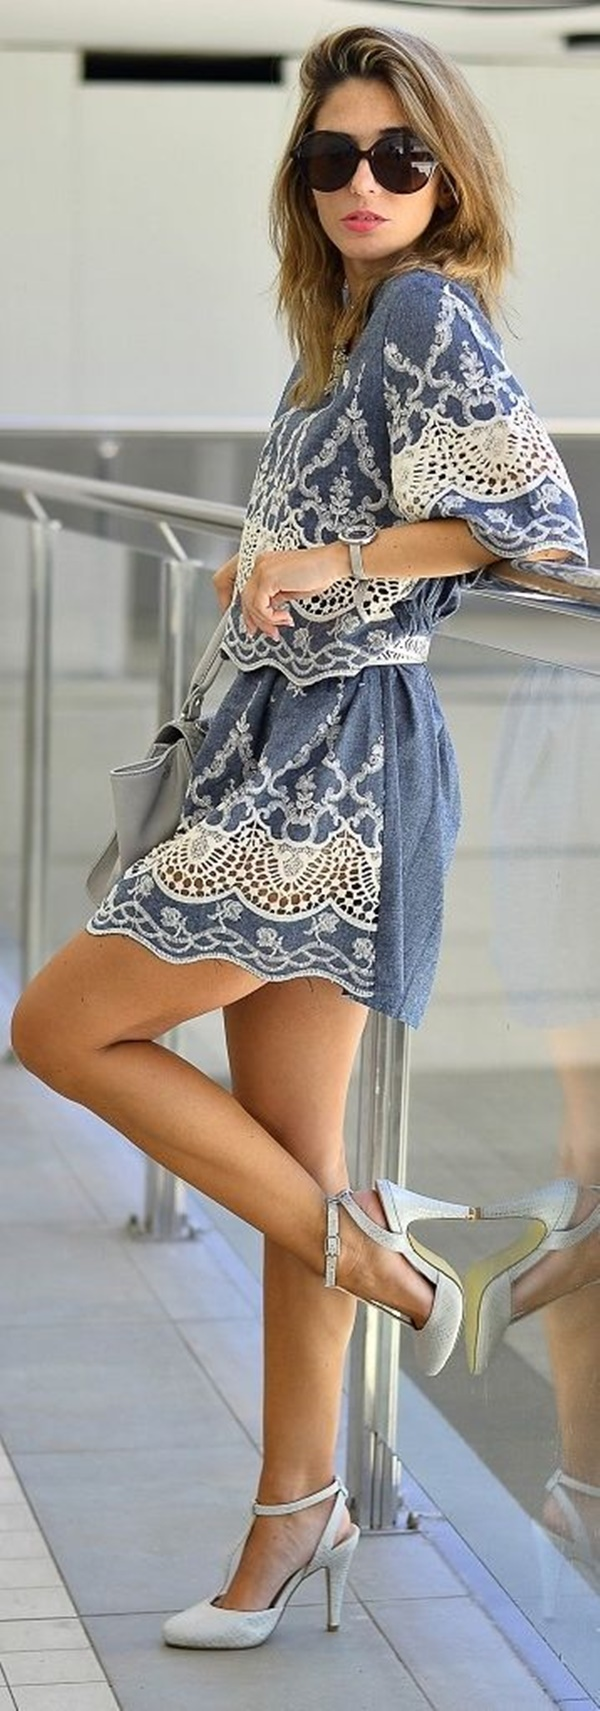 flirty outfits (23)